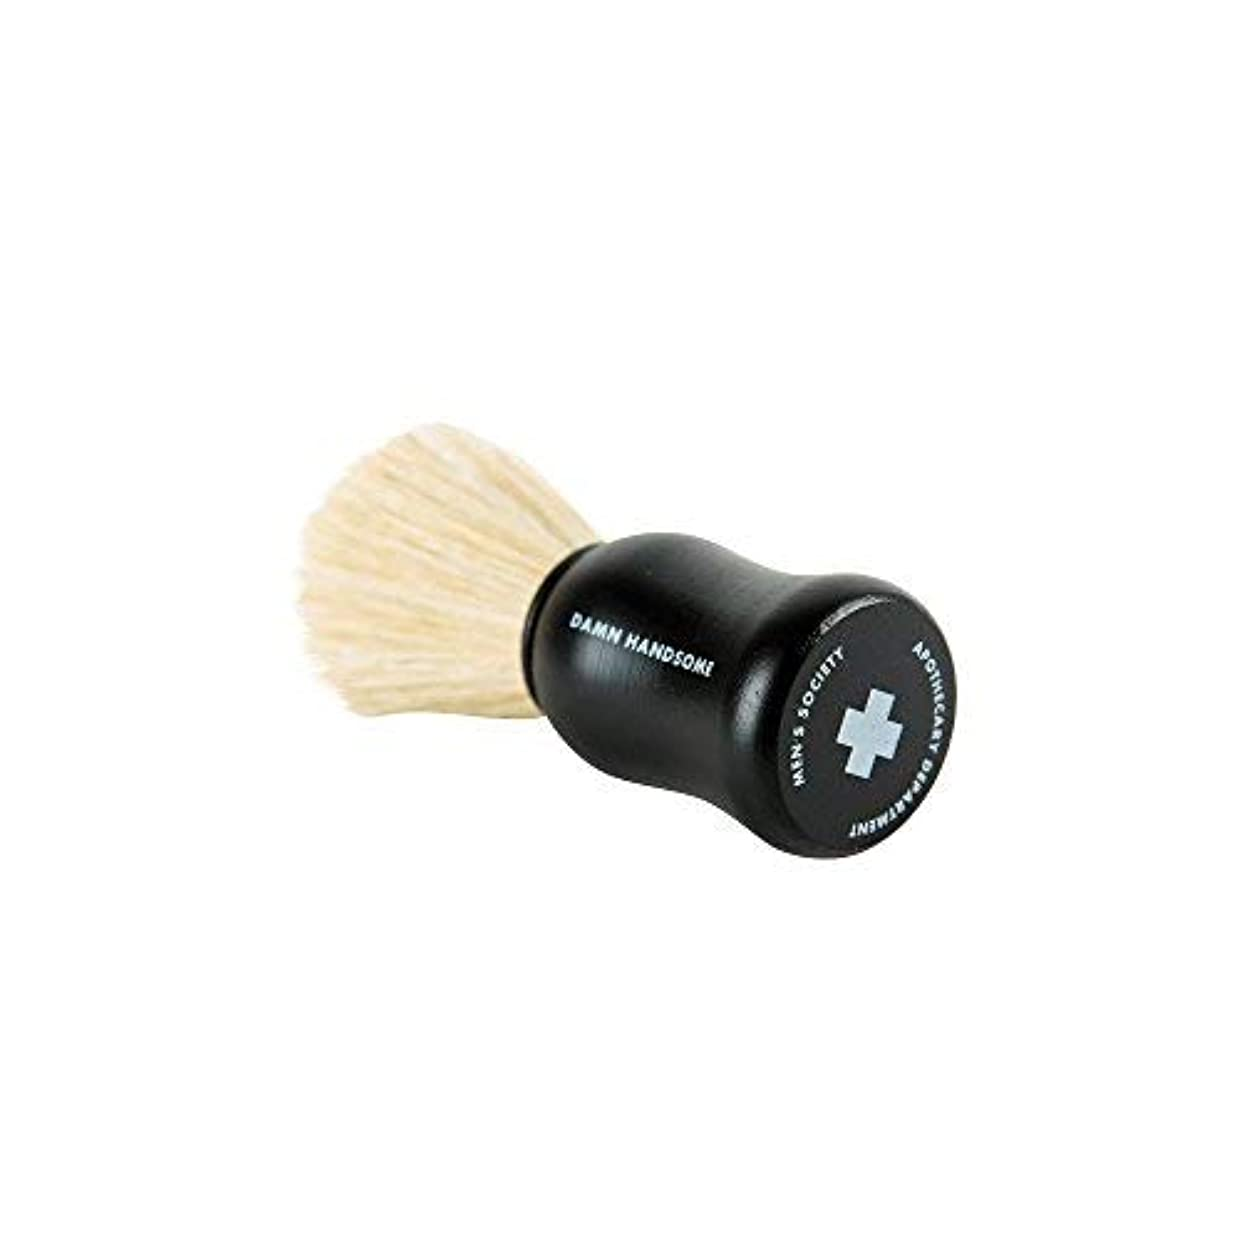 ハンサム型実証するMen's Society Shave Brush -Travel Shaving Brush for Men [並行輸入品]